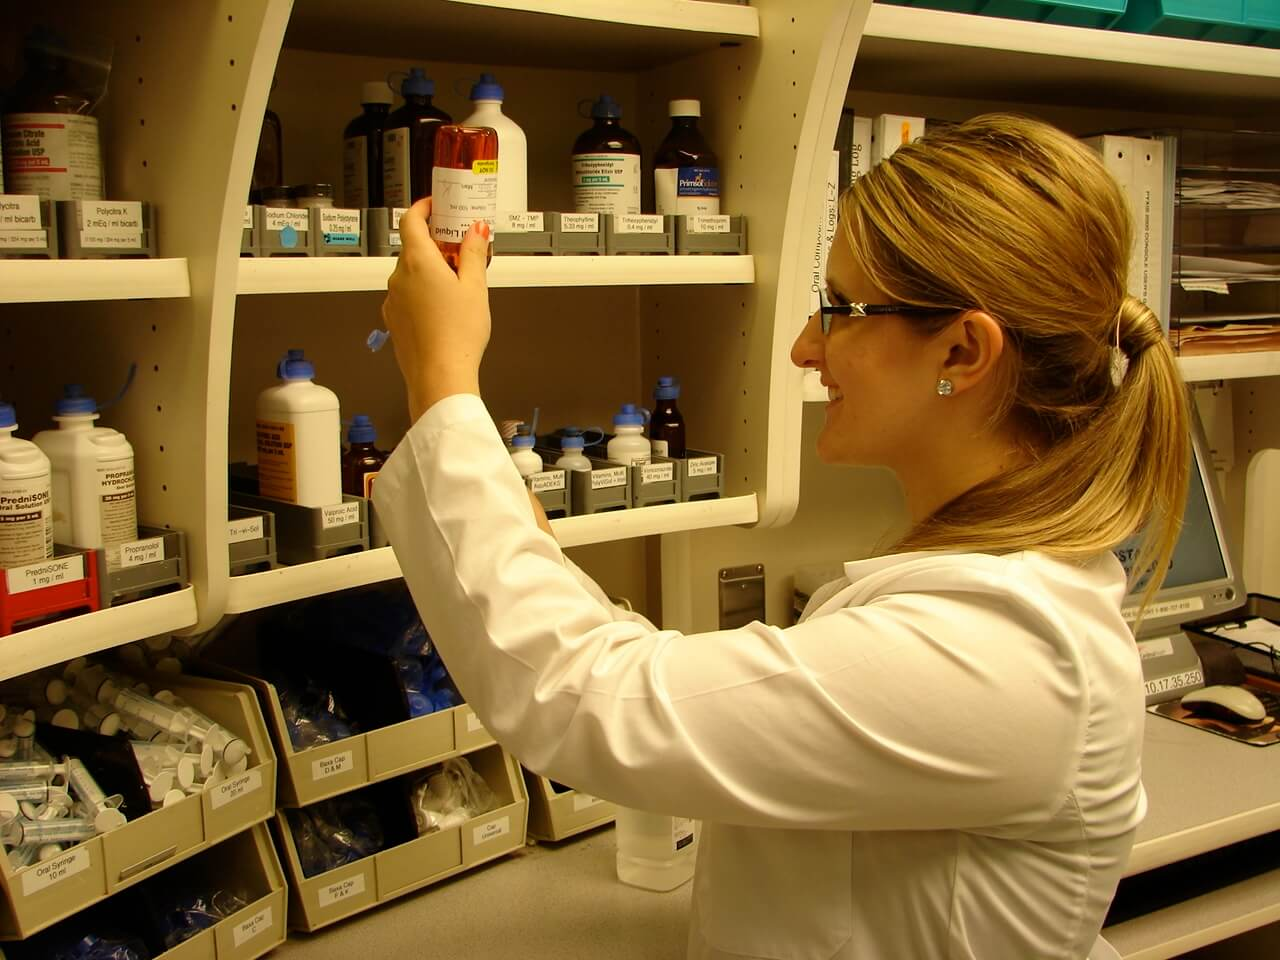 intern looking at a bottle in a pharmacy